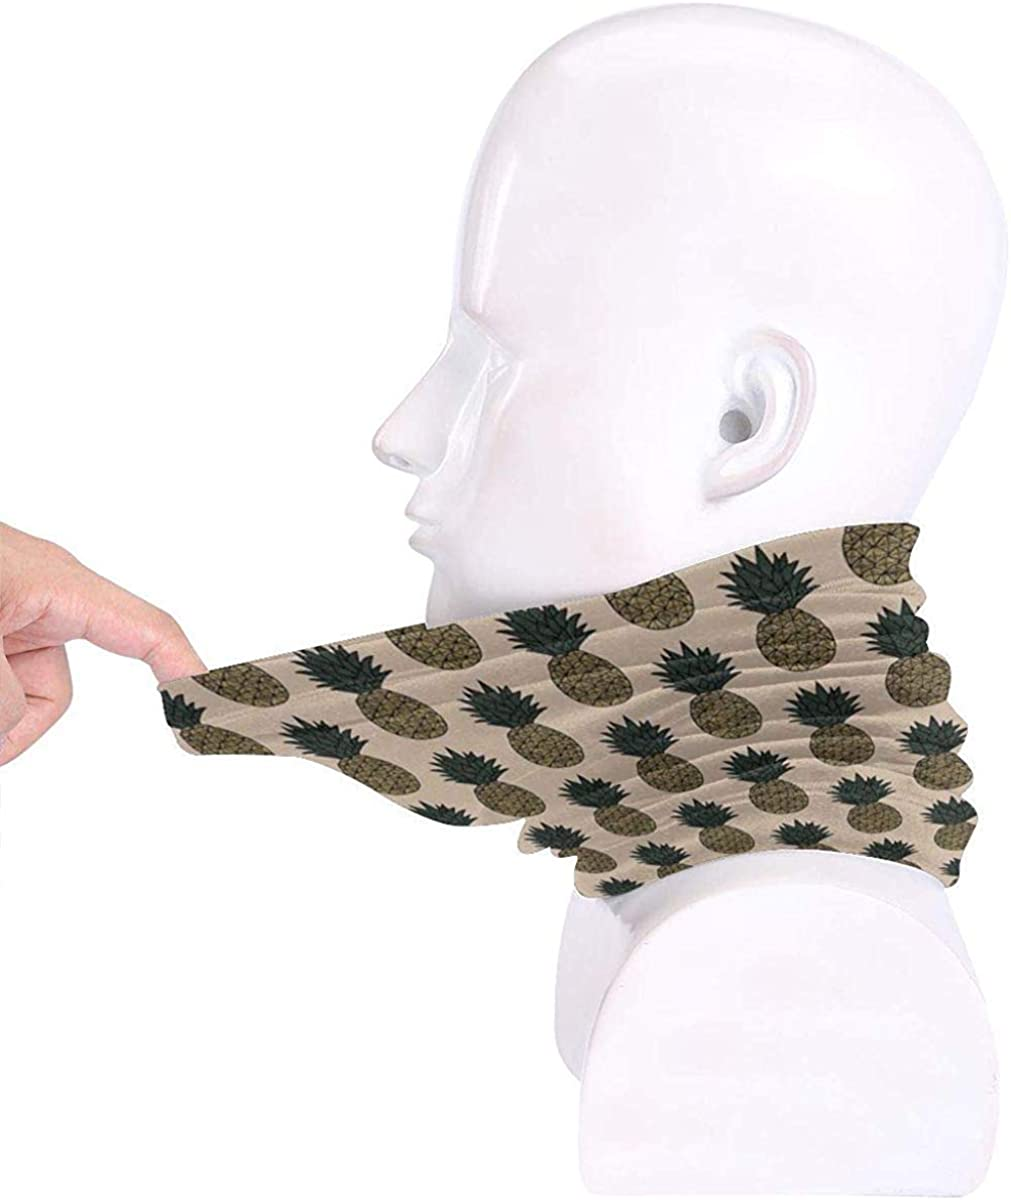 Bananas Microfiber Neck Warmer Balaclavas Soft Fleece Headwear Face Scarf Mask For Winter